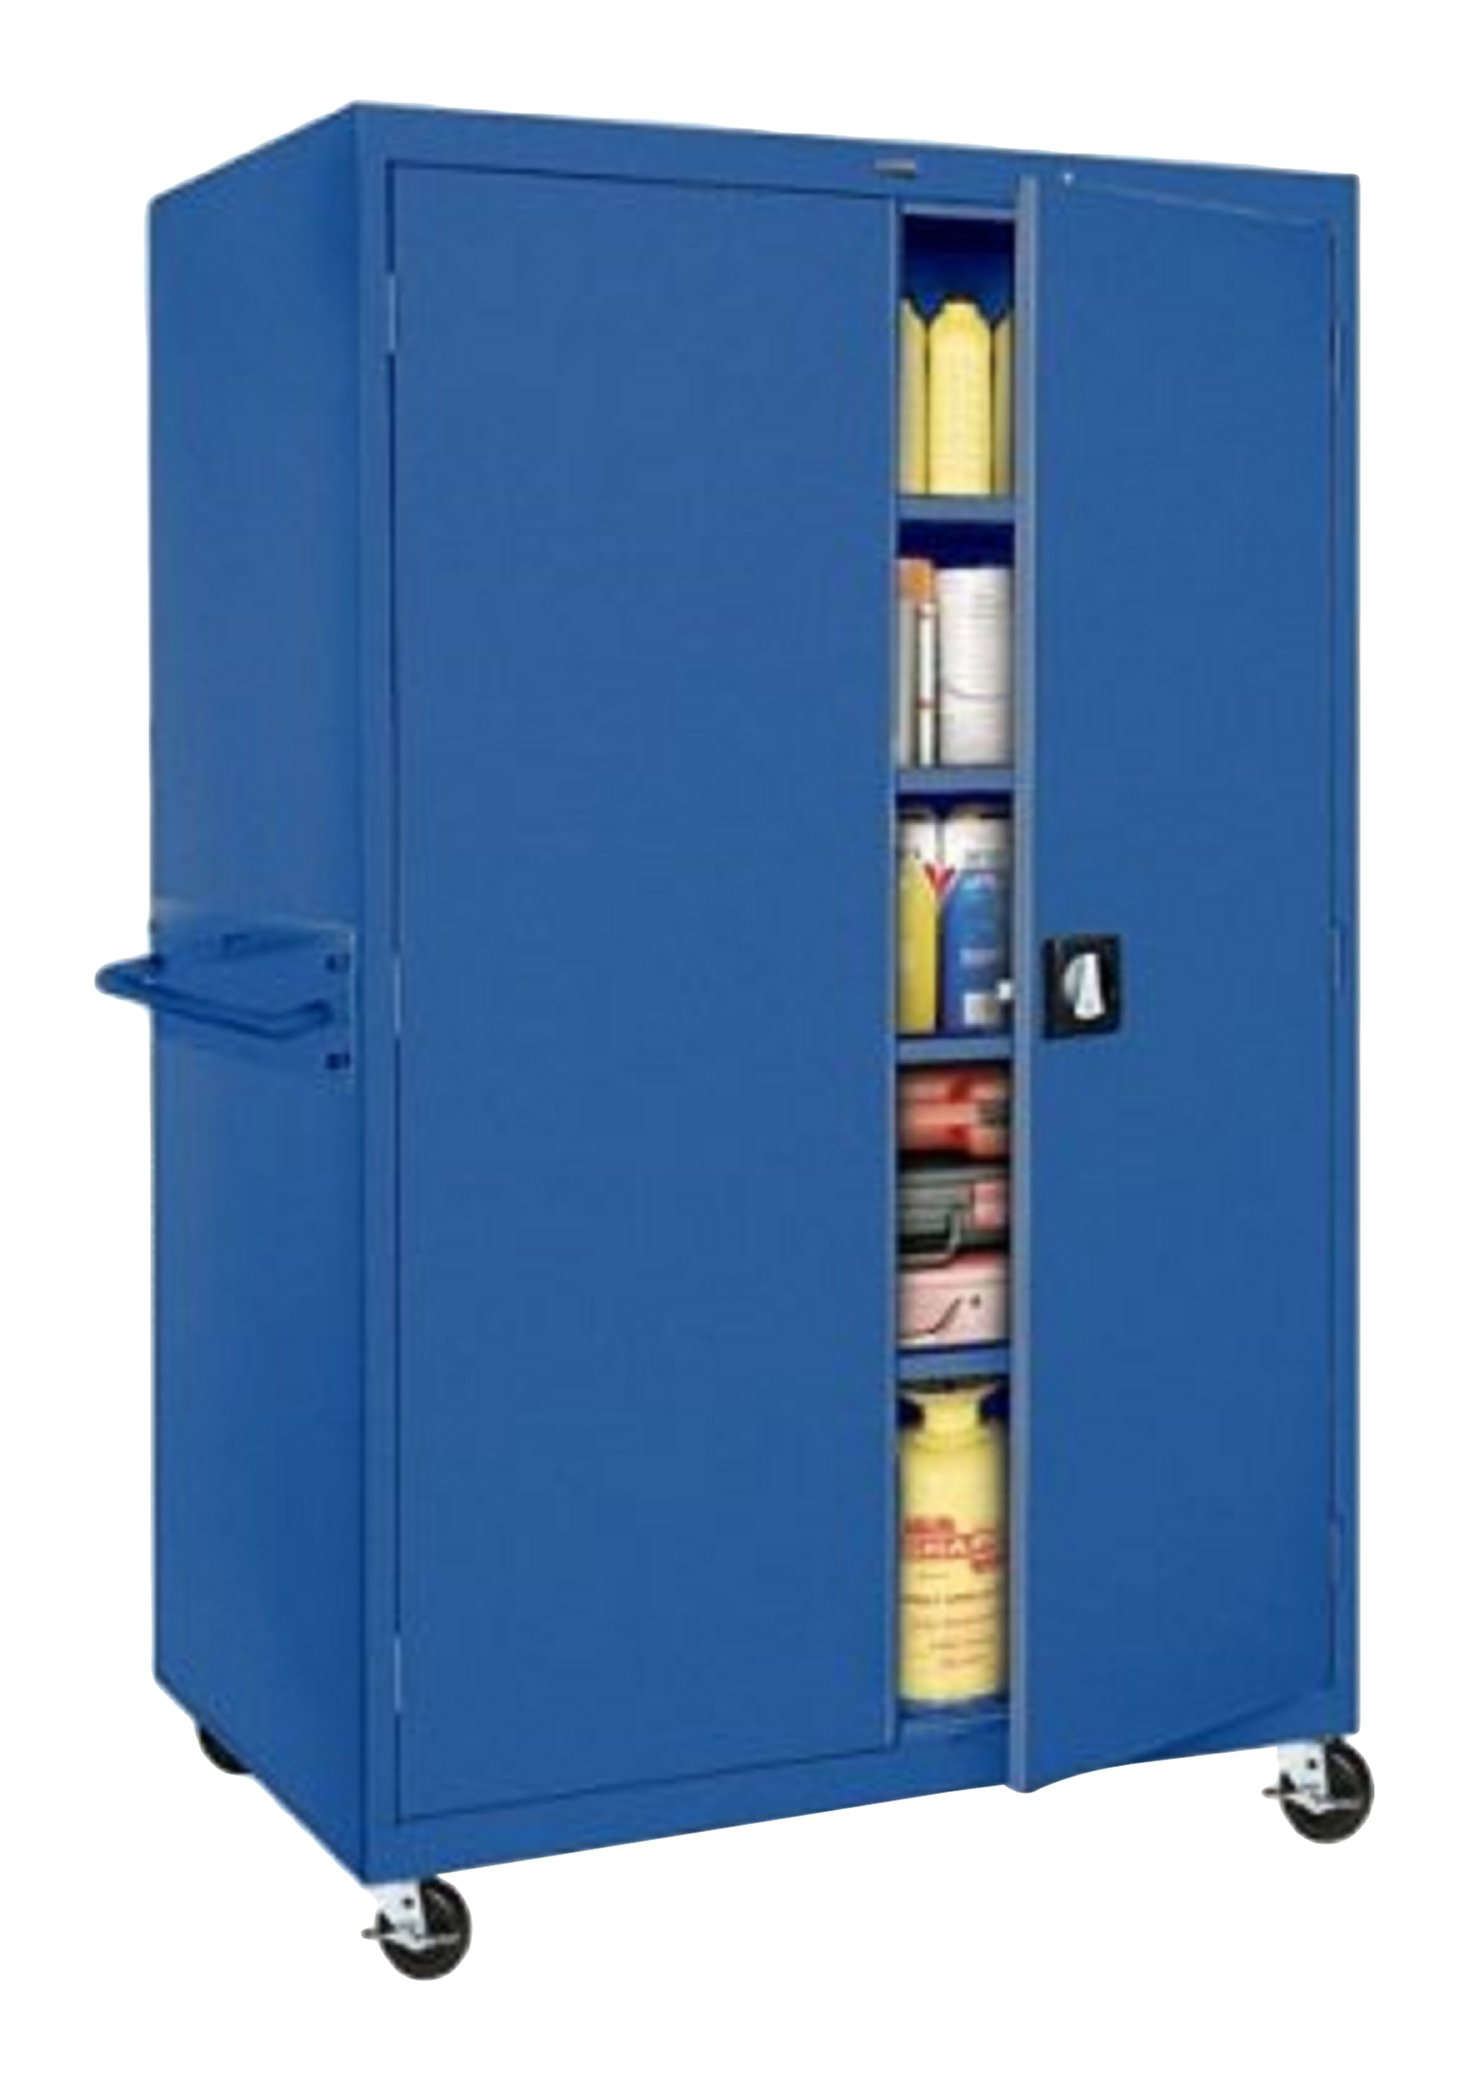 Sandusky Lee TA4R462472-06 Transport Series Mobile Storage Cabinet, Blue